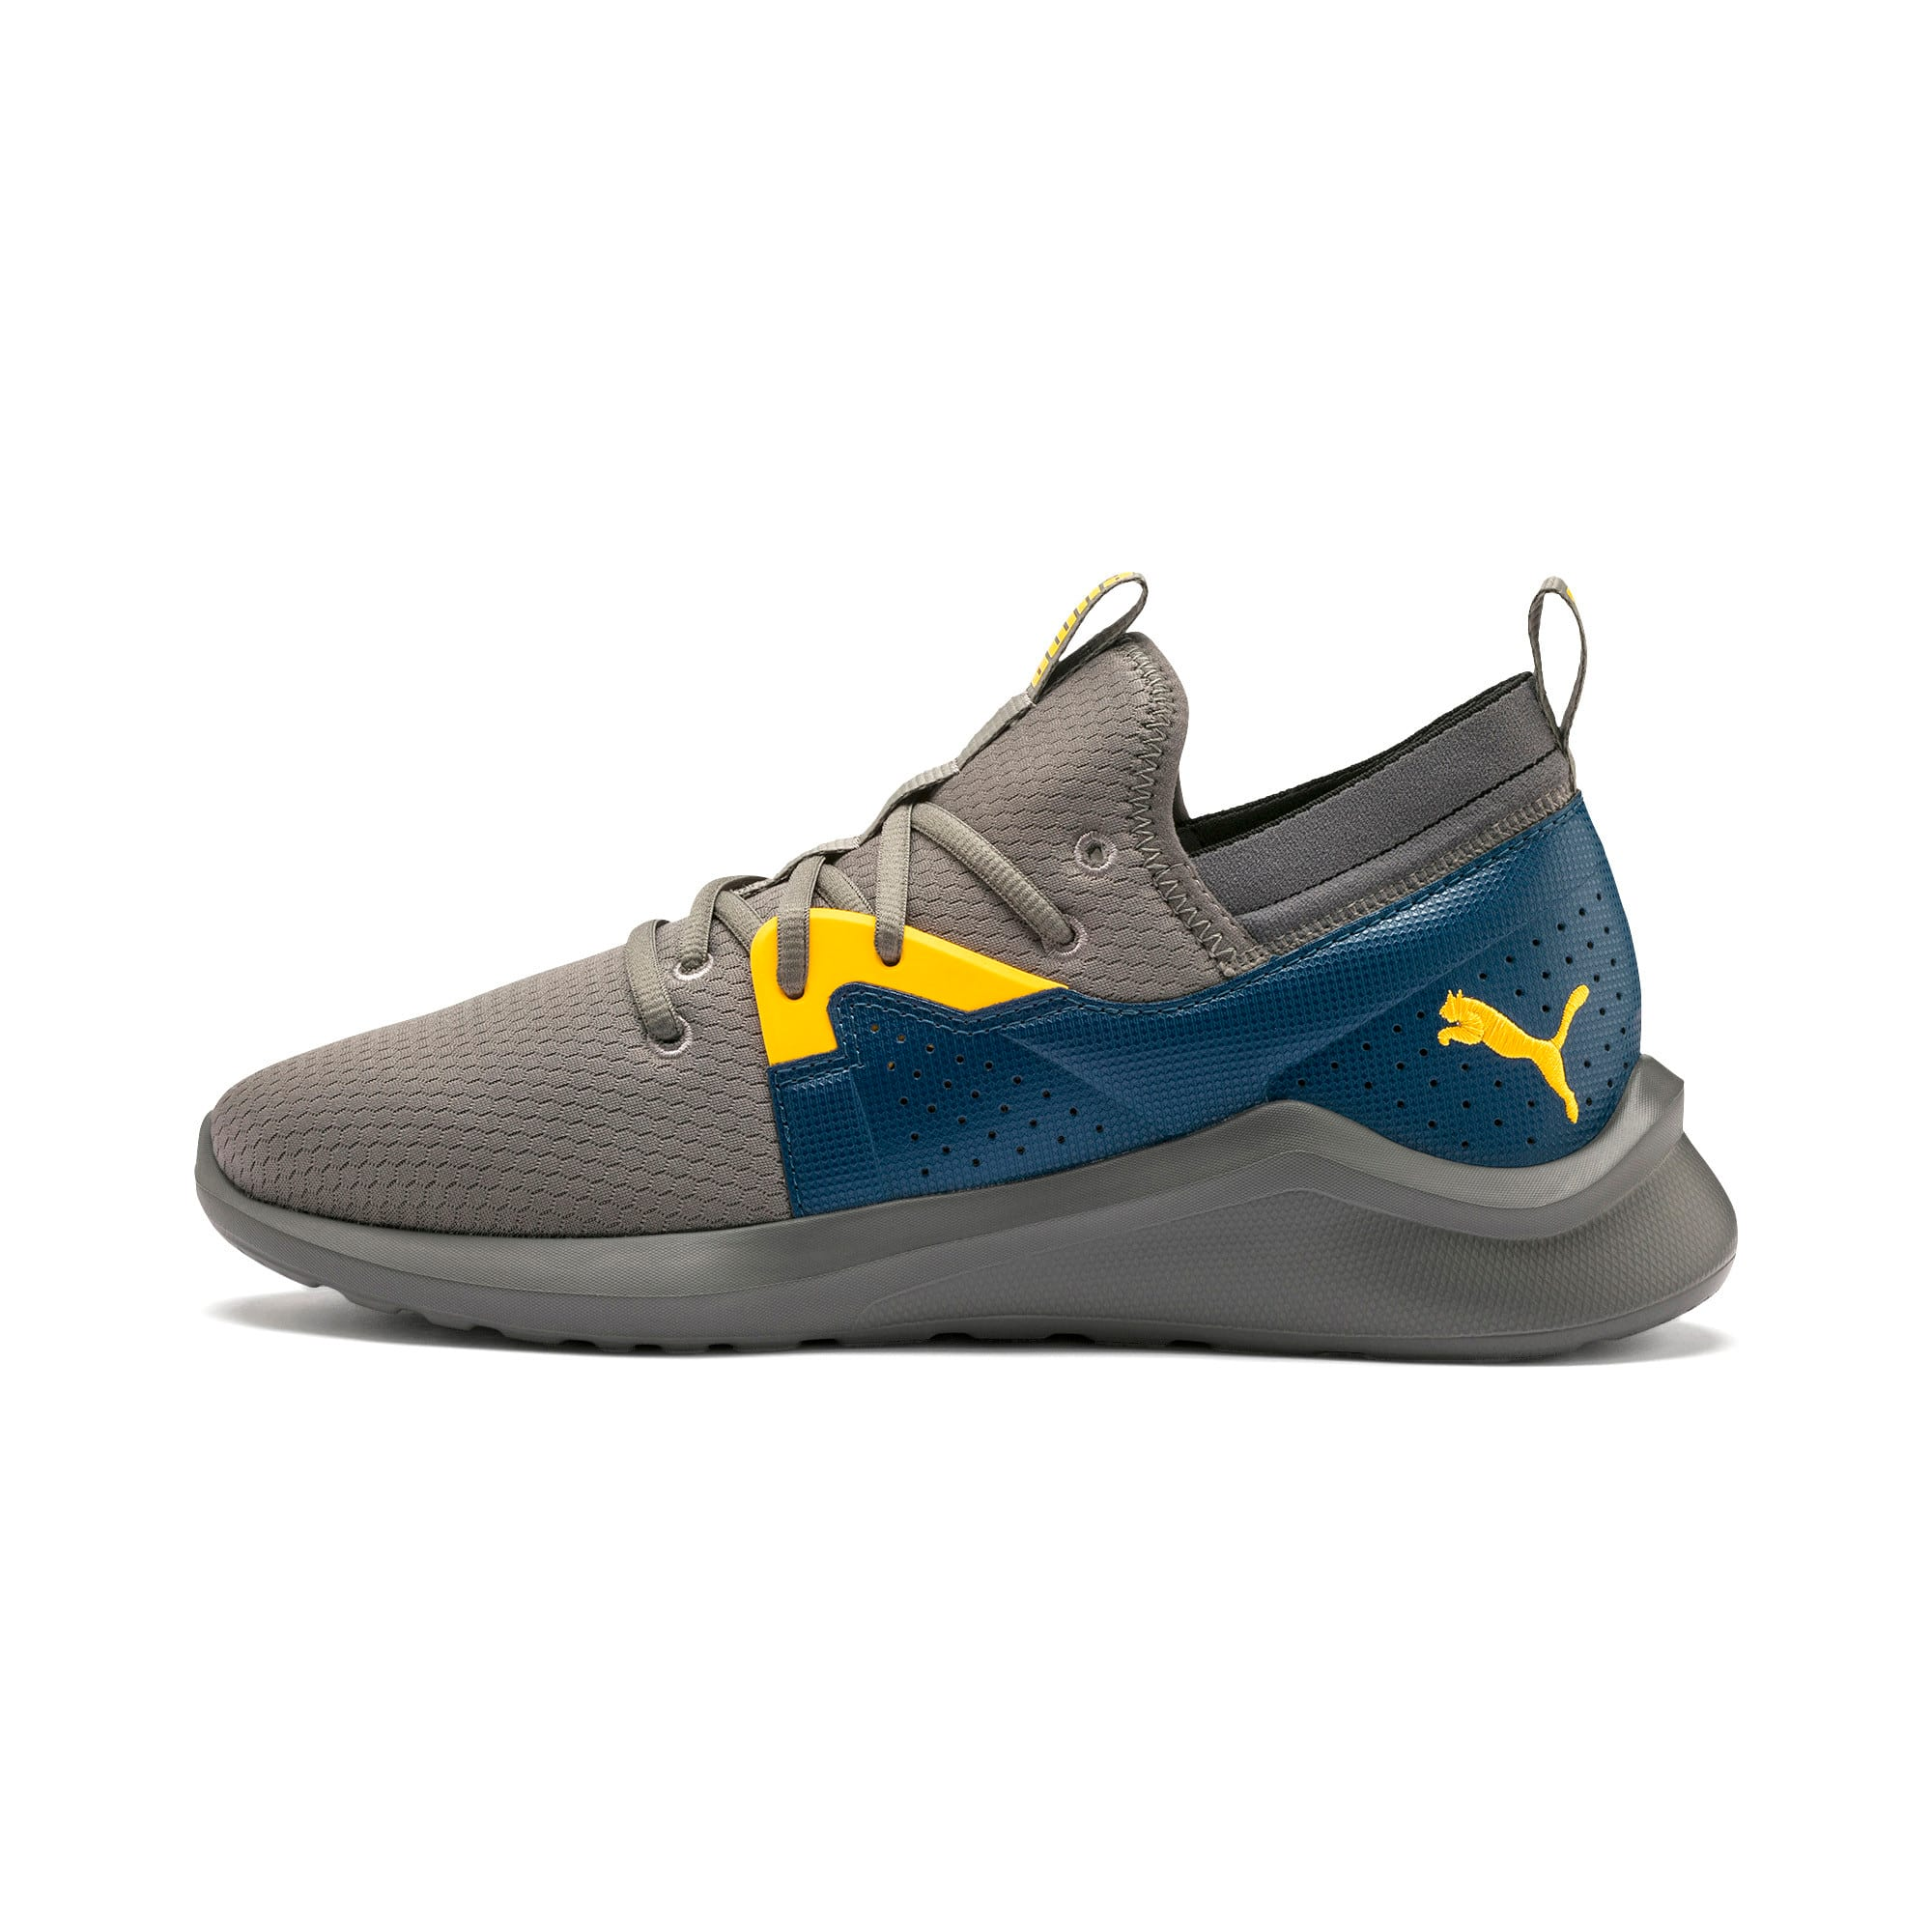 Thumbnail 1 of Emergence Hex Men's Training Shoes, CASTLEROCK-Gibral Sea-Or Alt, medium